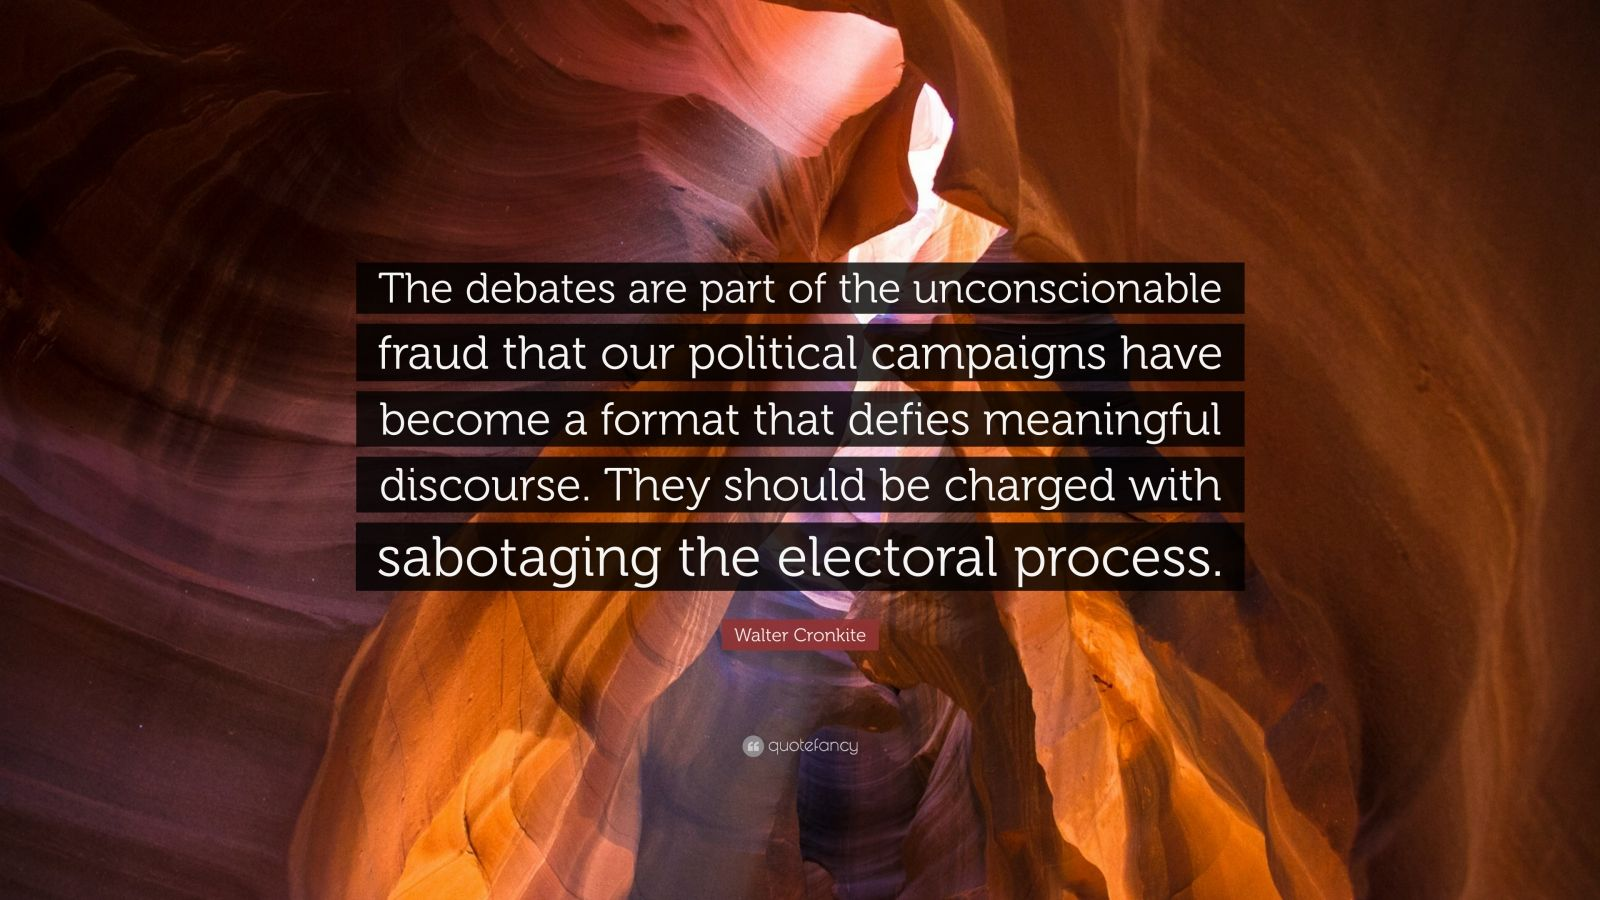 """Walter Cronkite Quote: """"The debates are part of the unconscionable fraud that our political campaigns have become a format that defies meaningful discourse. They should be charged with sabotaging the electoral process."""""""